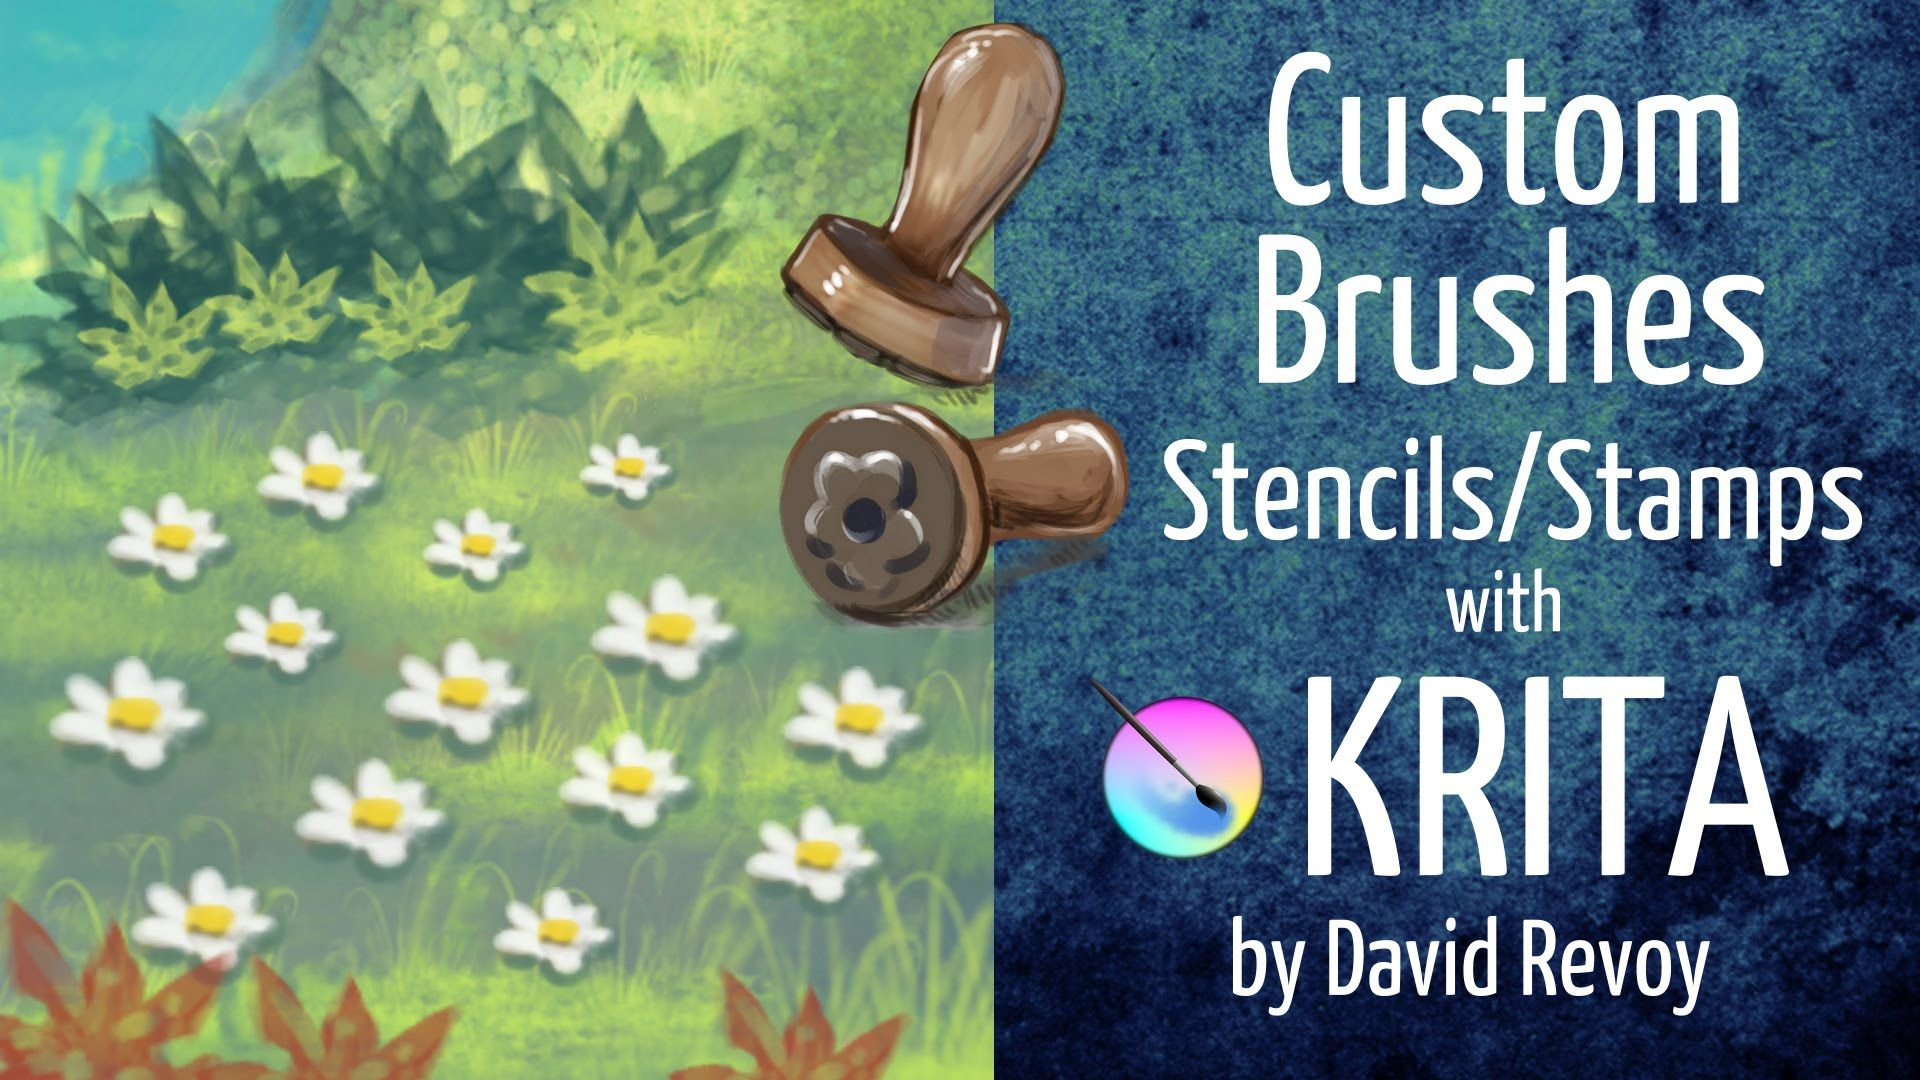 Custom Brushes (Stencil/Stamps) with Krita | Stencils, Stamp